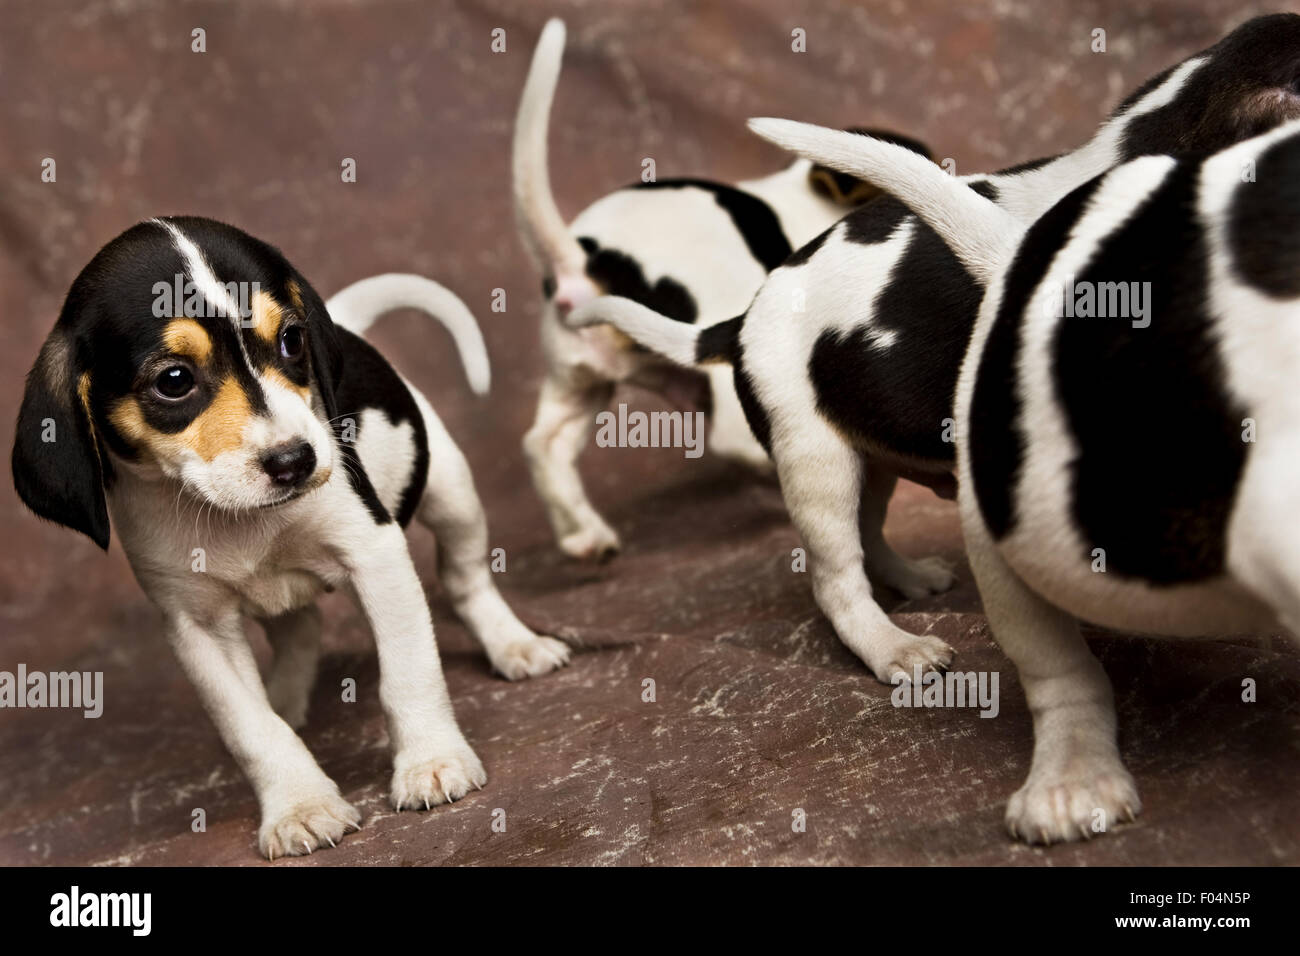 four black and white Beagle puppies walking around on brown backdrop in studio setting - Stock Image